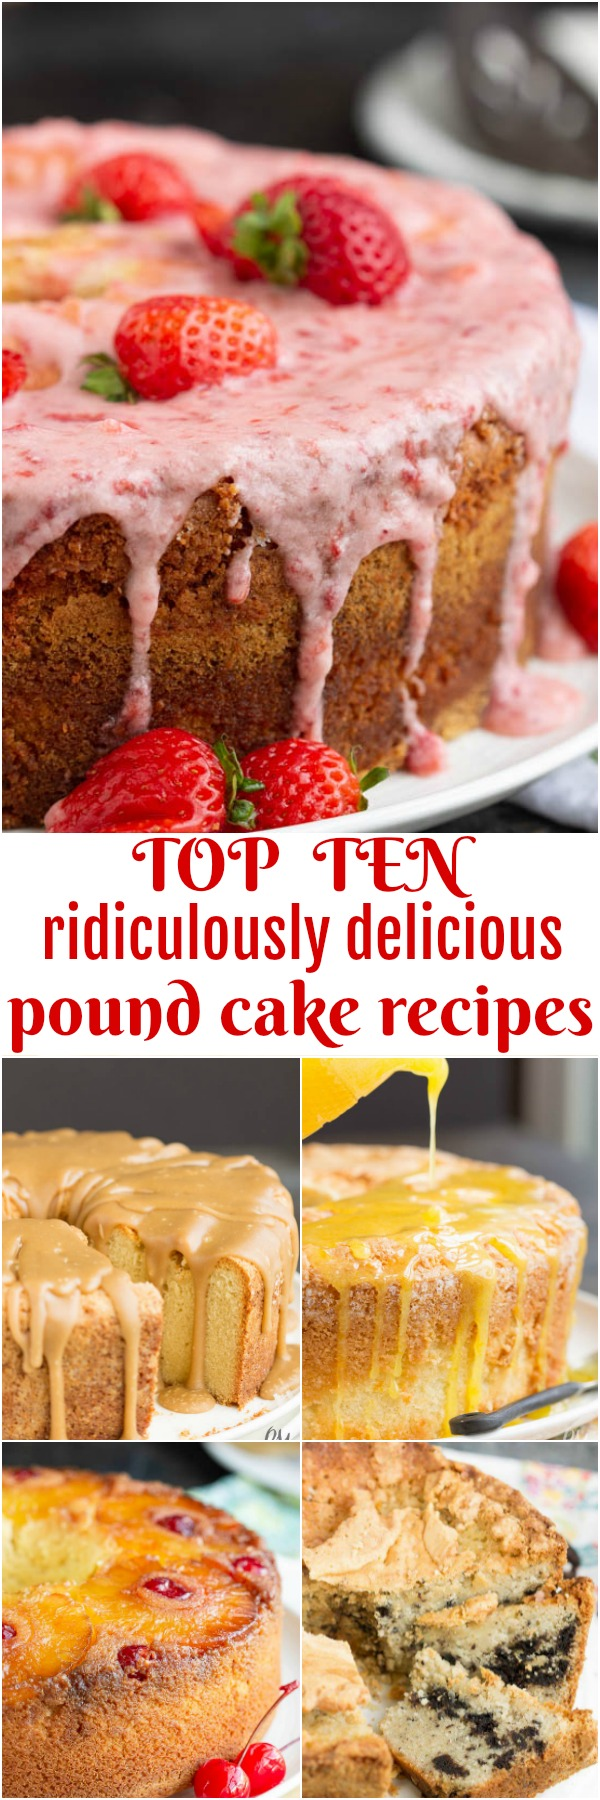 My Top Ten Most Popular Pound Cake Recipes - A RoundupPound Cakes, the quintessential Southern dessert, are my favorite cakes to bake.